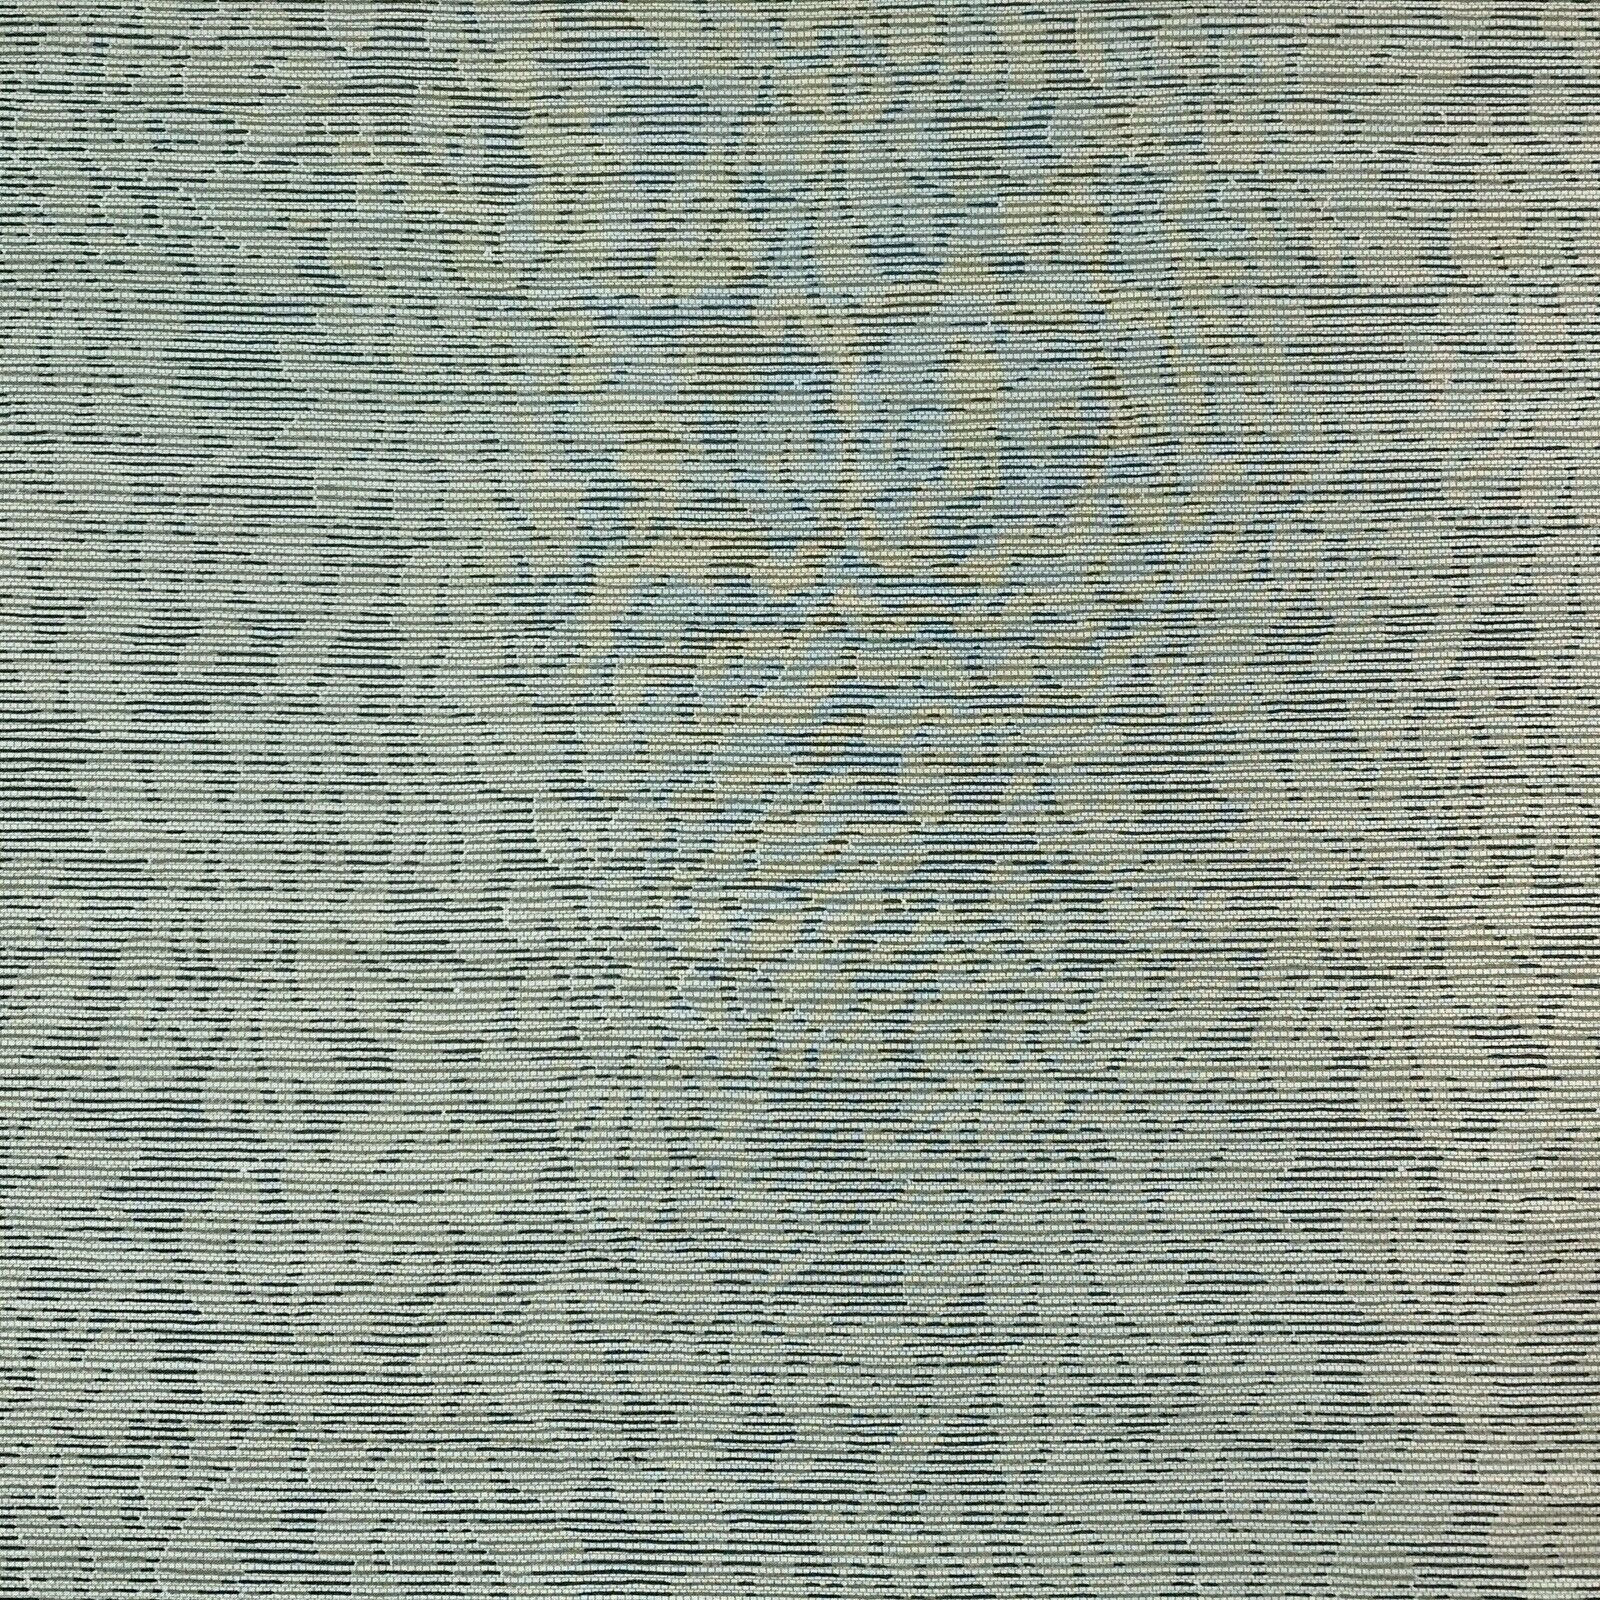 Details about Jaipur Green Floral Stripe Fabric by Jinny